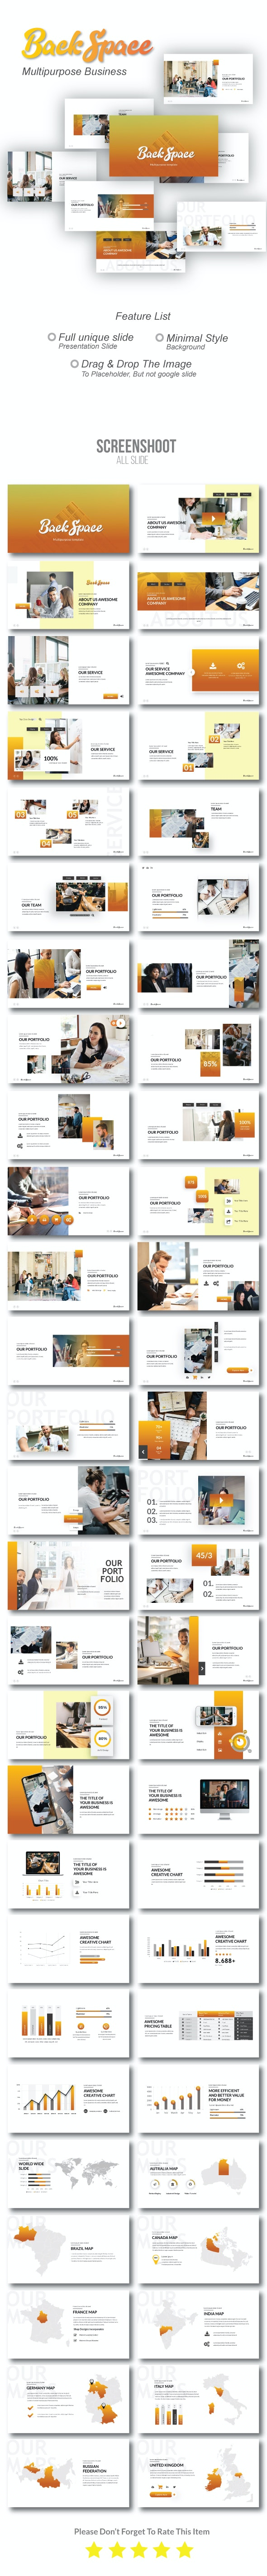 Backspace Business Keynote - Business Keynote Templates